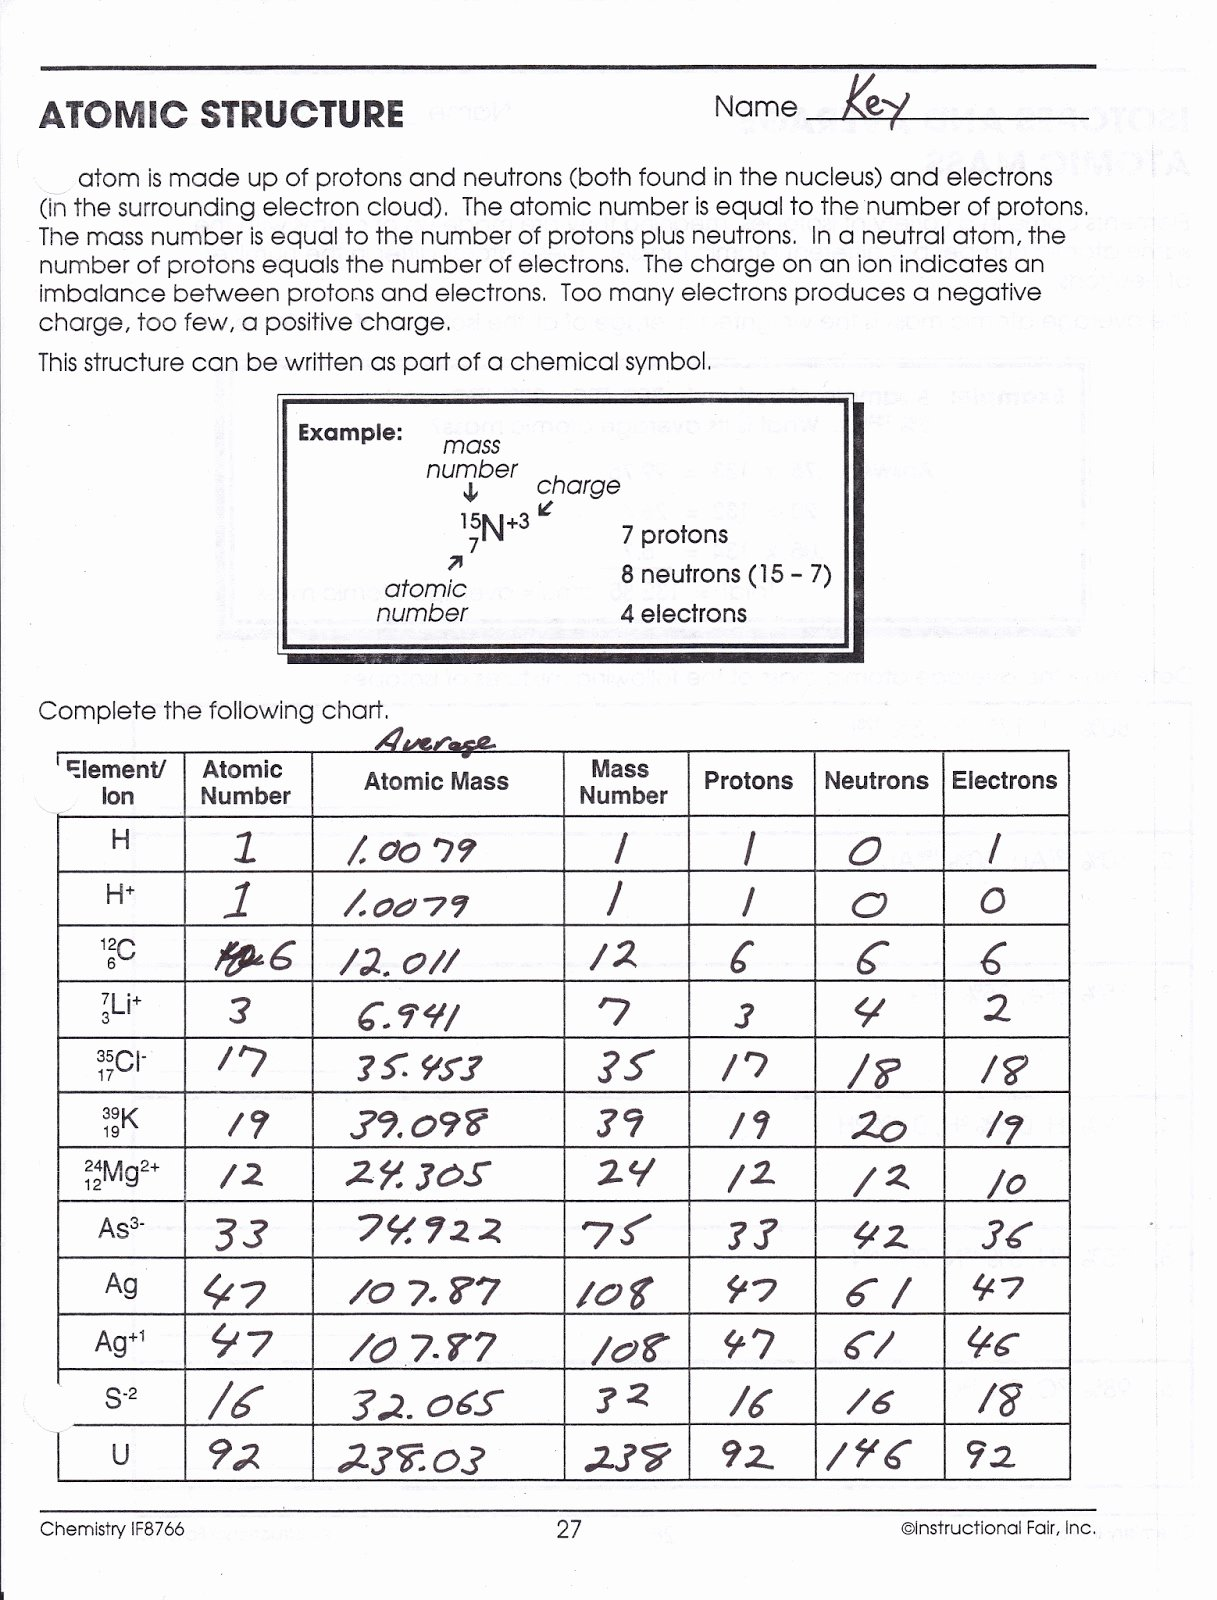 Atomic Structure Worksheet Answers Best Of Atomic